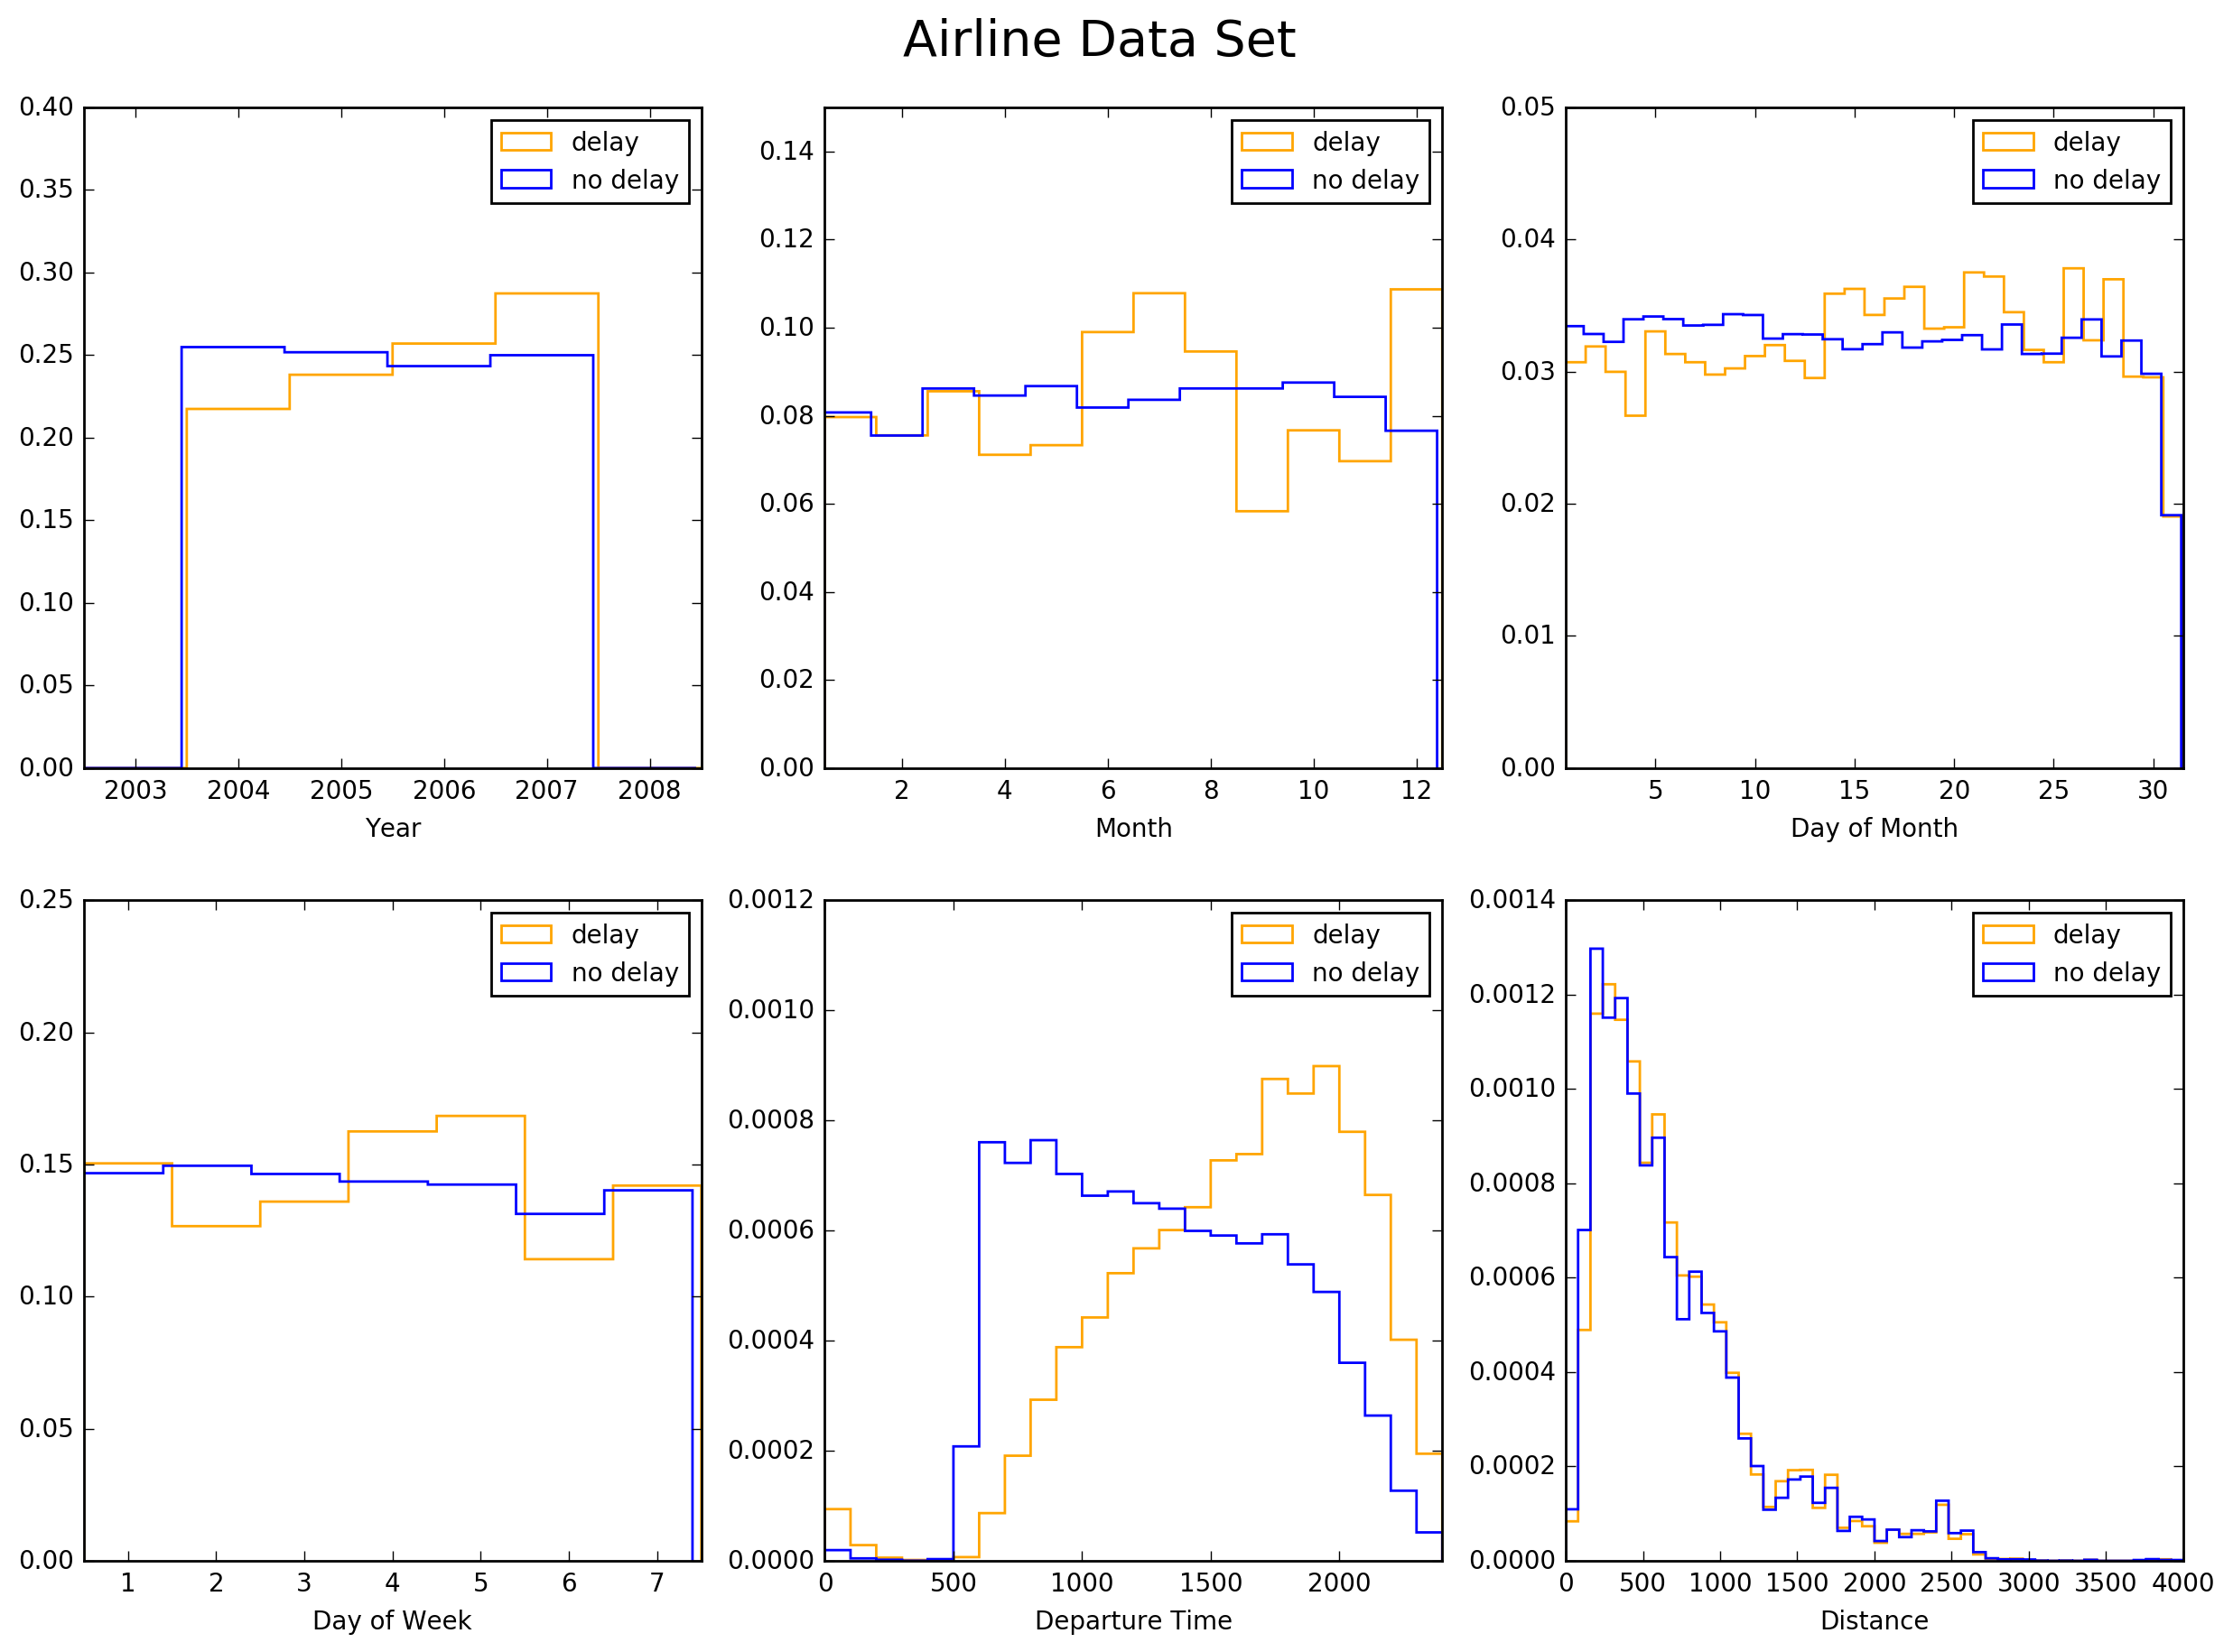 Predicting Flight Delays with a Random Forest